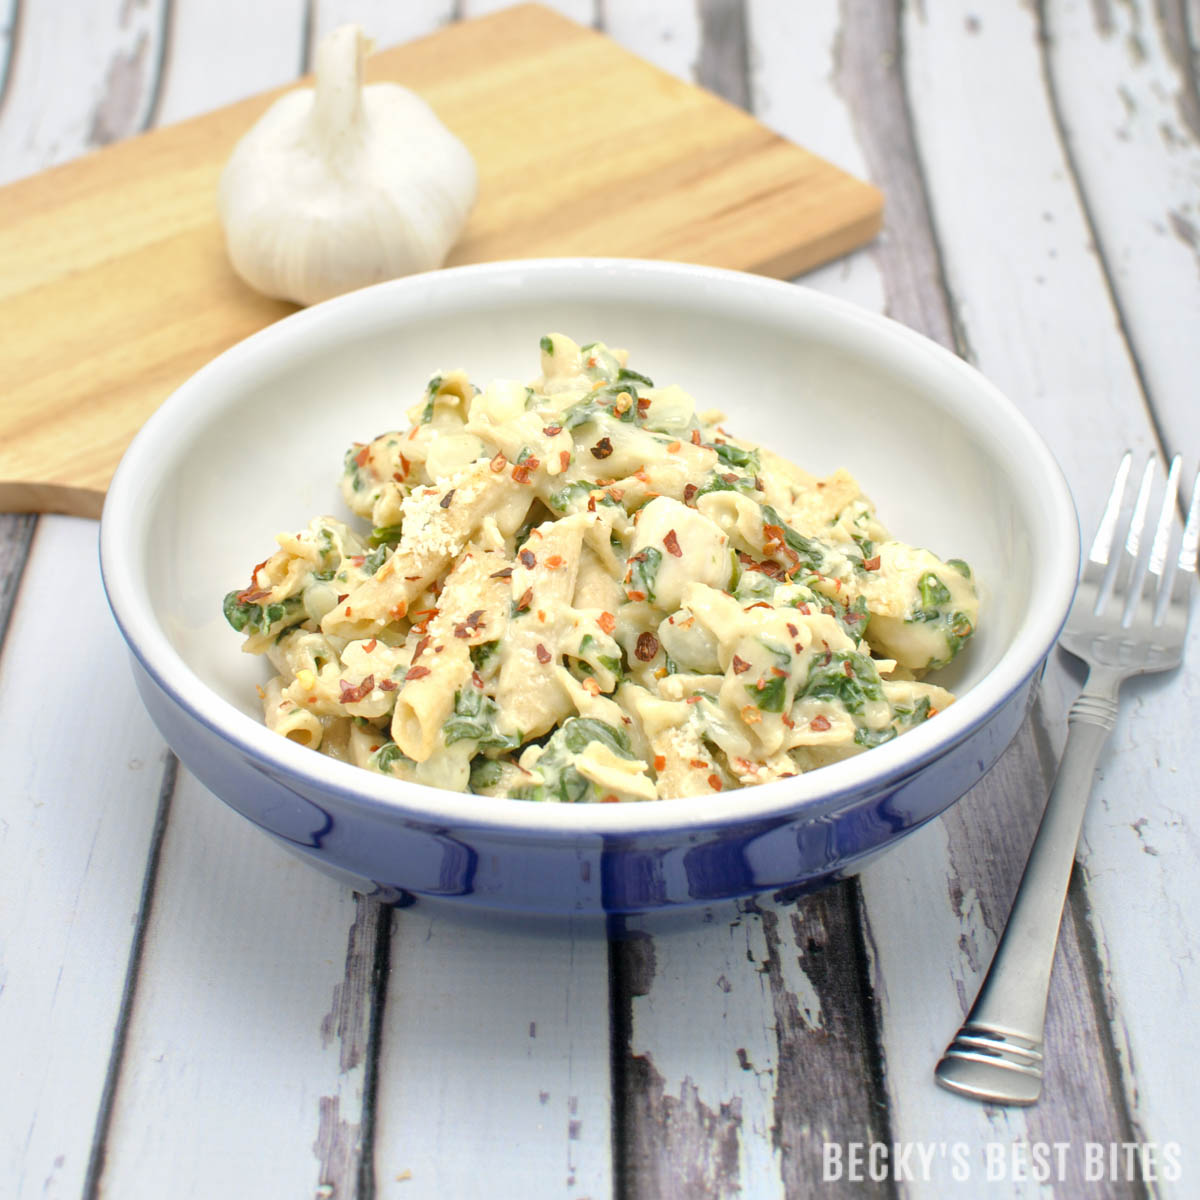 Skip the long waits at restaurants this weekend and make Creamy Garlic Spinach Chicken Pasta meal for your Valentine! This easy, healthy dinner recipe will melt their heart!! | beckysbestbites.com